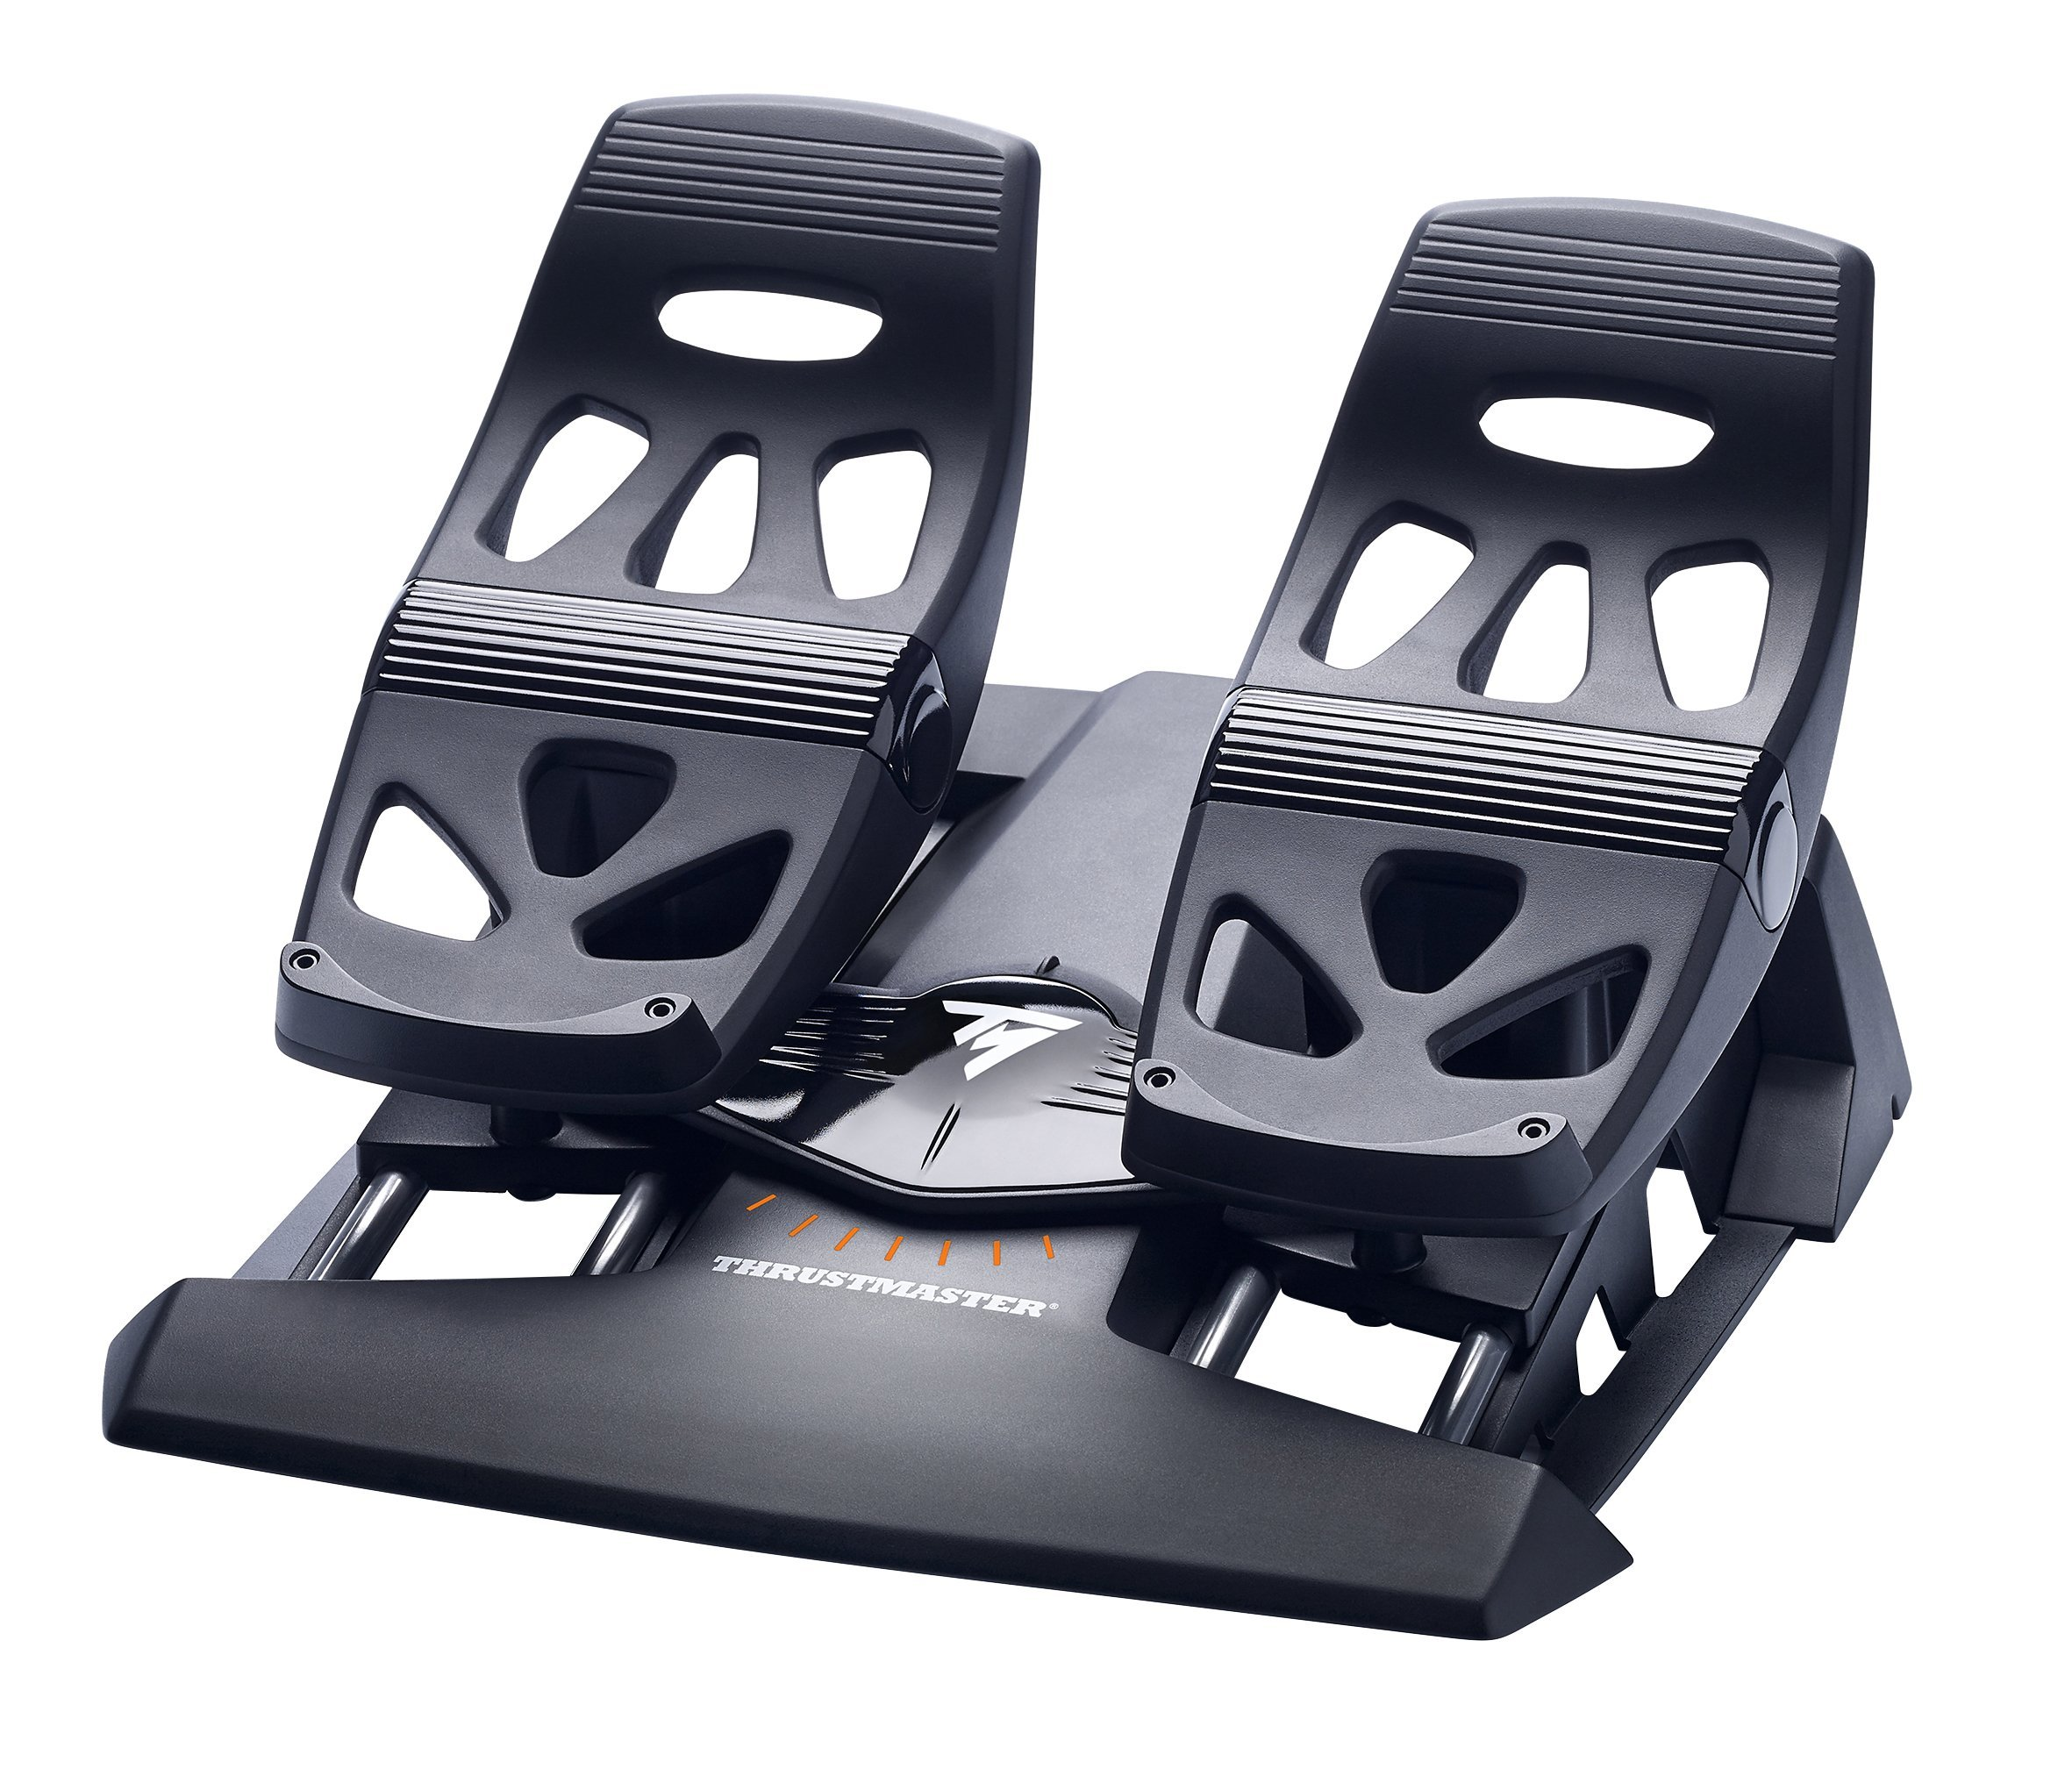 Thrustmaster TFRP Flight Rudder Pedals for PC & Playstation 4 (2960764) by ThrustMaster